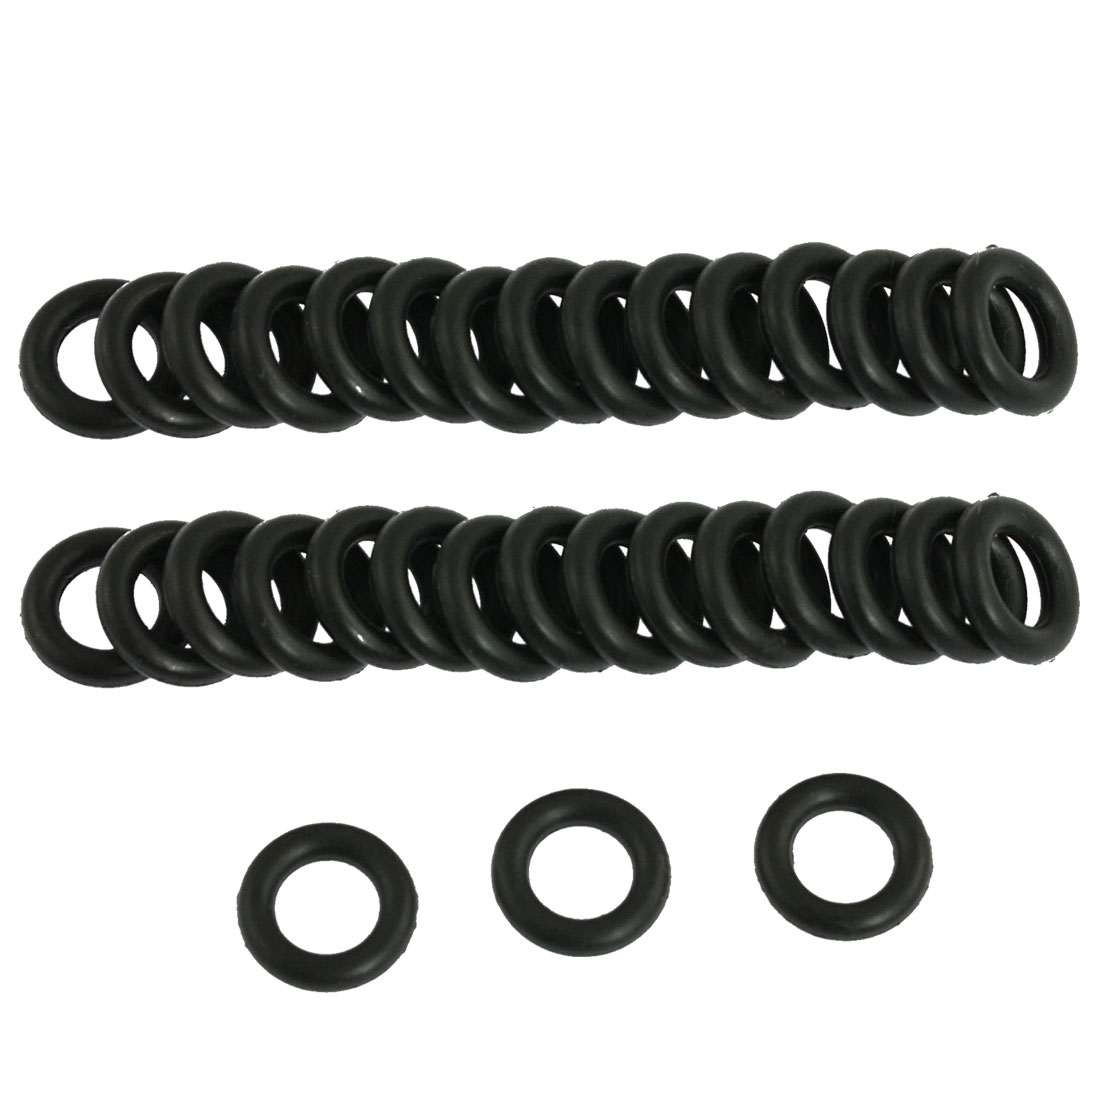 50 Pcs 11mm x 2.5mm Nitrile Rubber O Ring NBR Oil Seal Gaskets